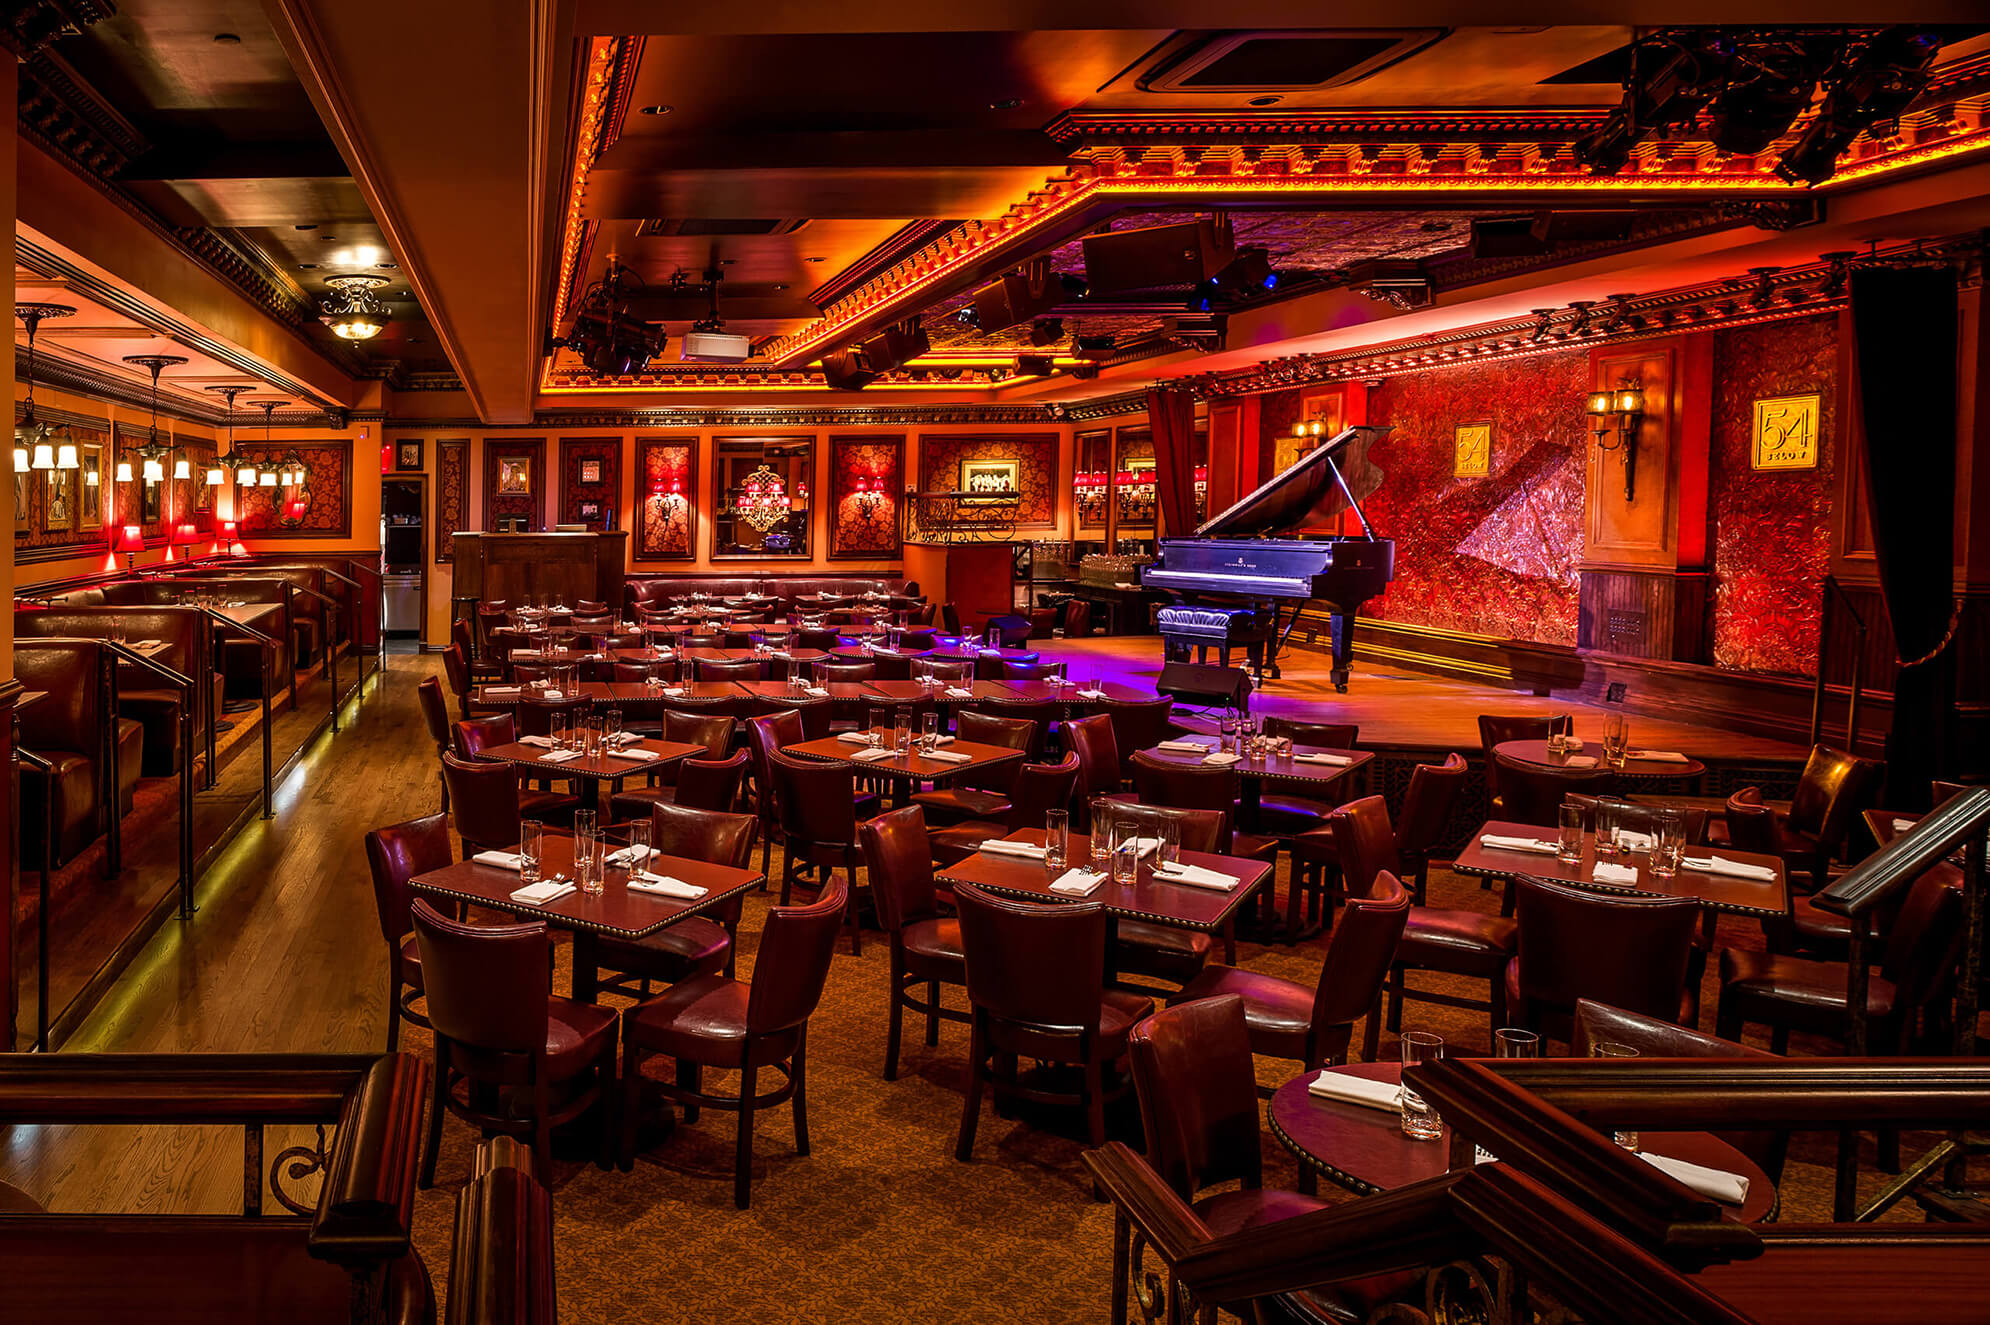 Feinstein's / 54 Below event space in New York City, NYC, NY/NJ Area